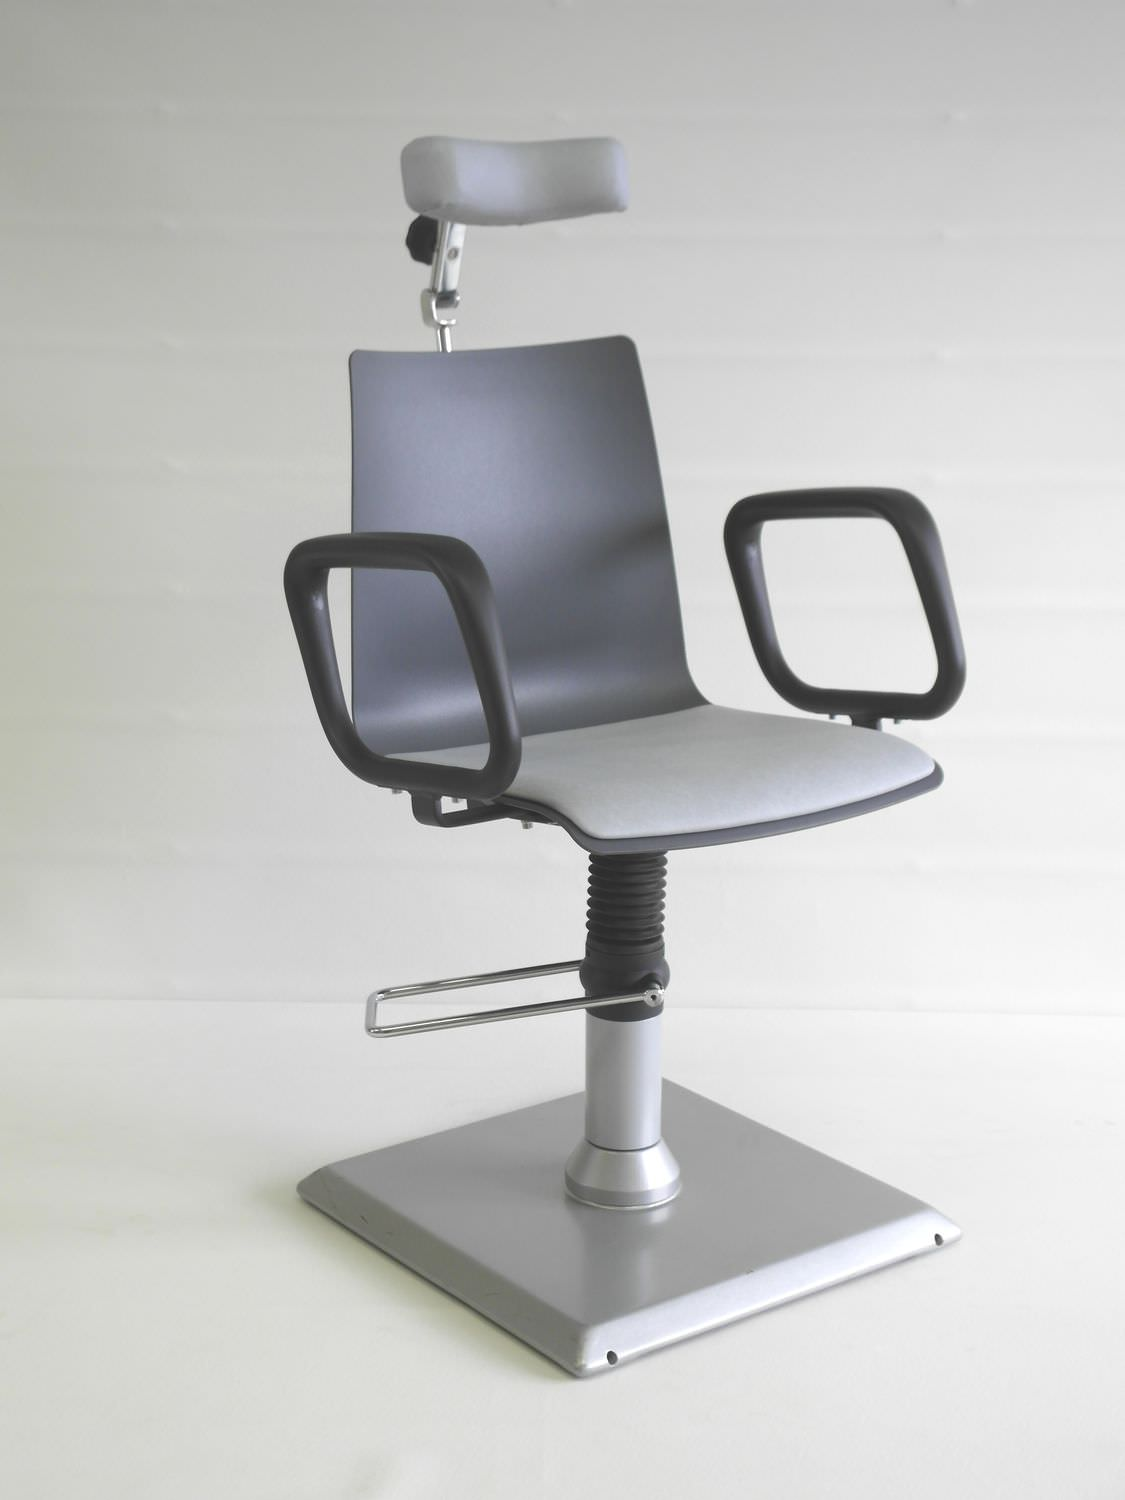 Dental Chairs Hydraulic Dental Chair For Dental Radiography Coburg Ray O